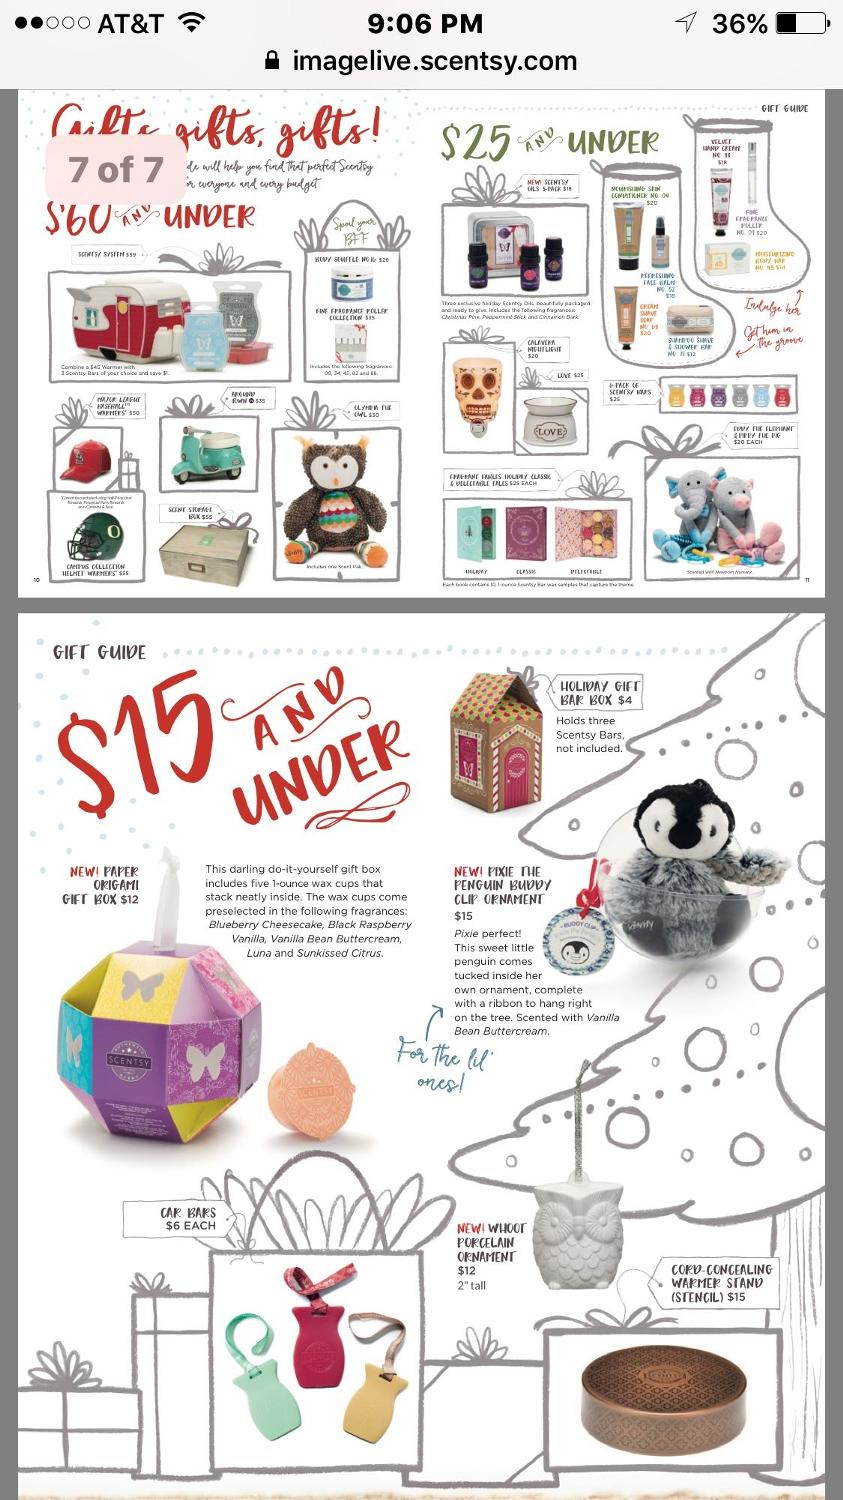 Scentsy Christmas Gifts.Scentsy Christmas Gifts Under 15 Add Shipping And Tax